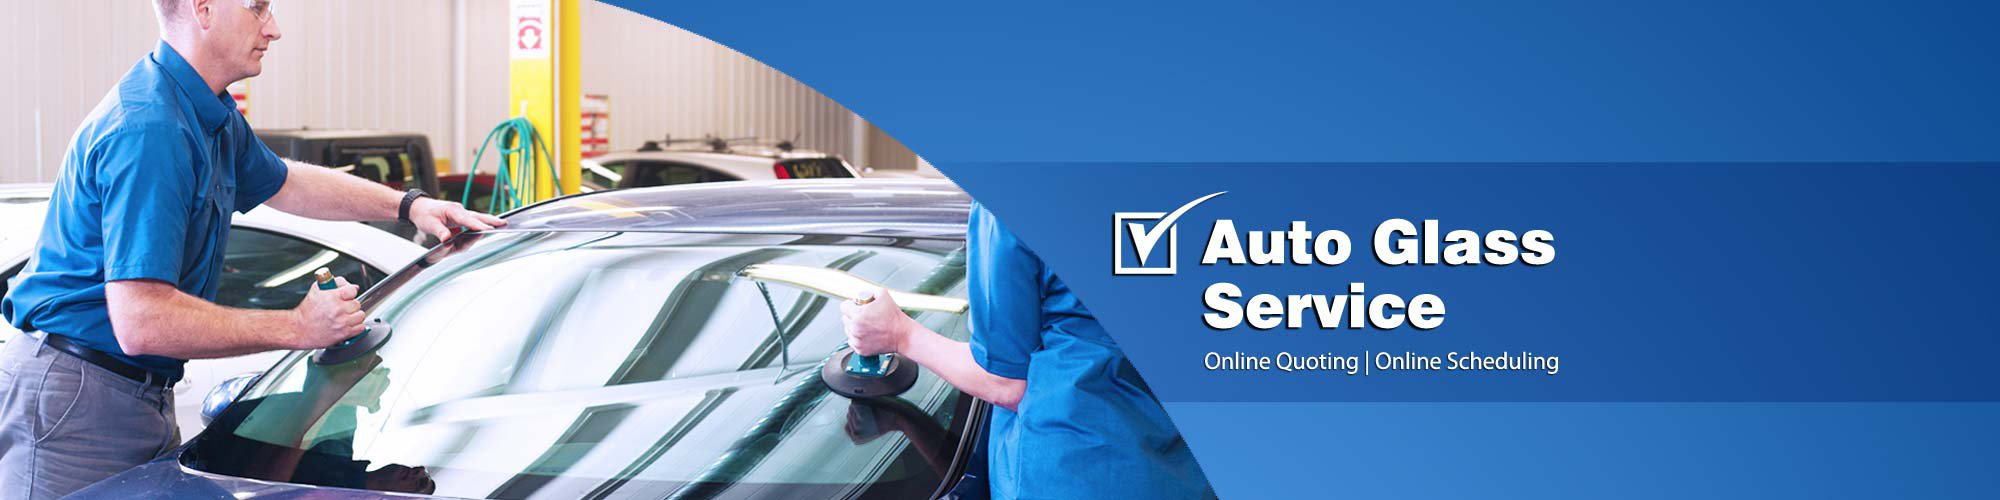 find location schedule appointment instant auto glass - Automotive Glass